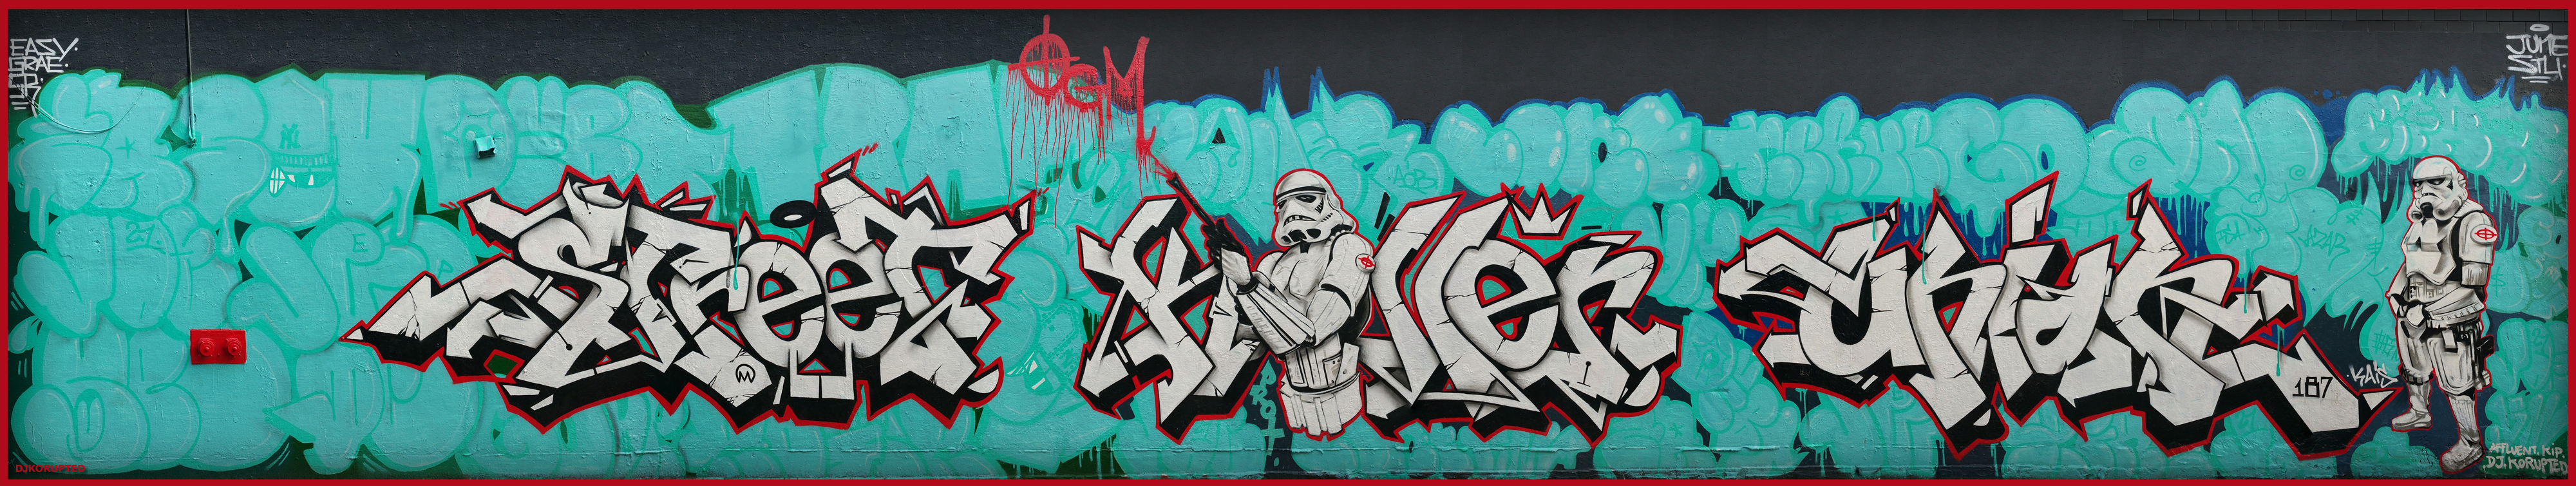 Stormtroopers Wall Production, Uptown NYC, 2014.